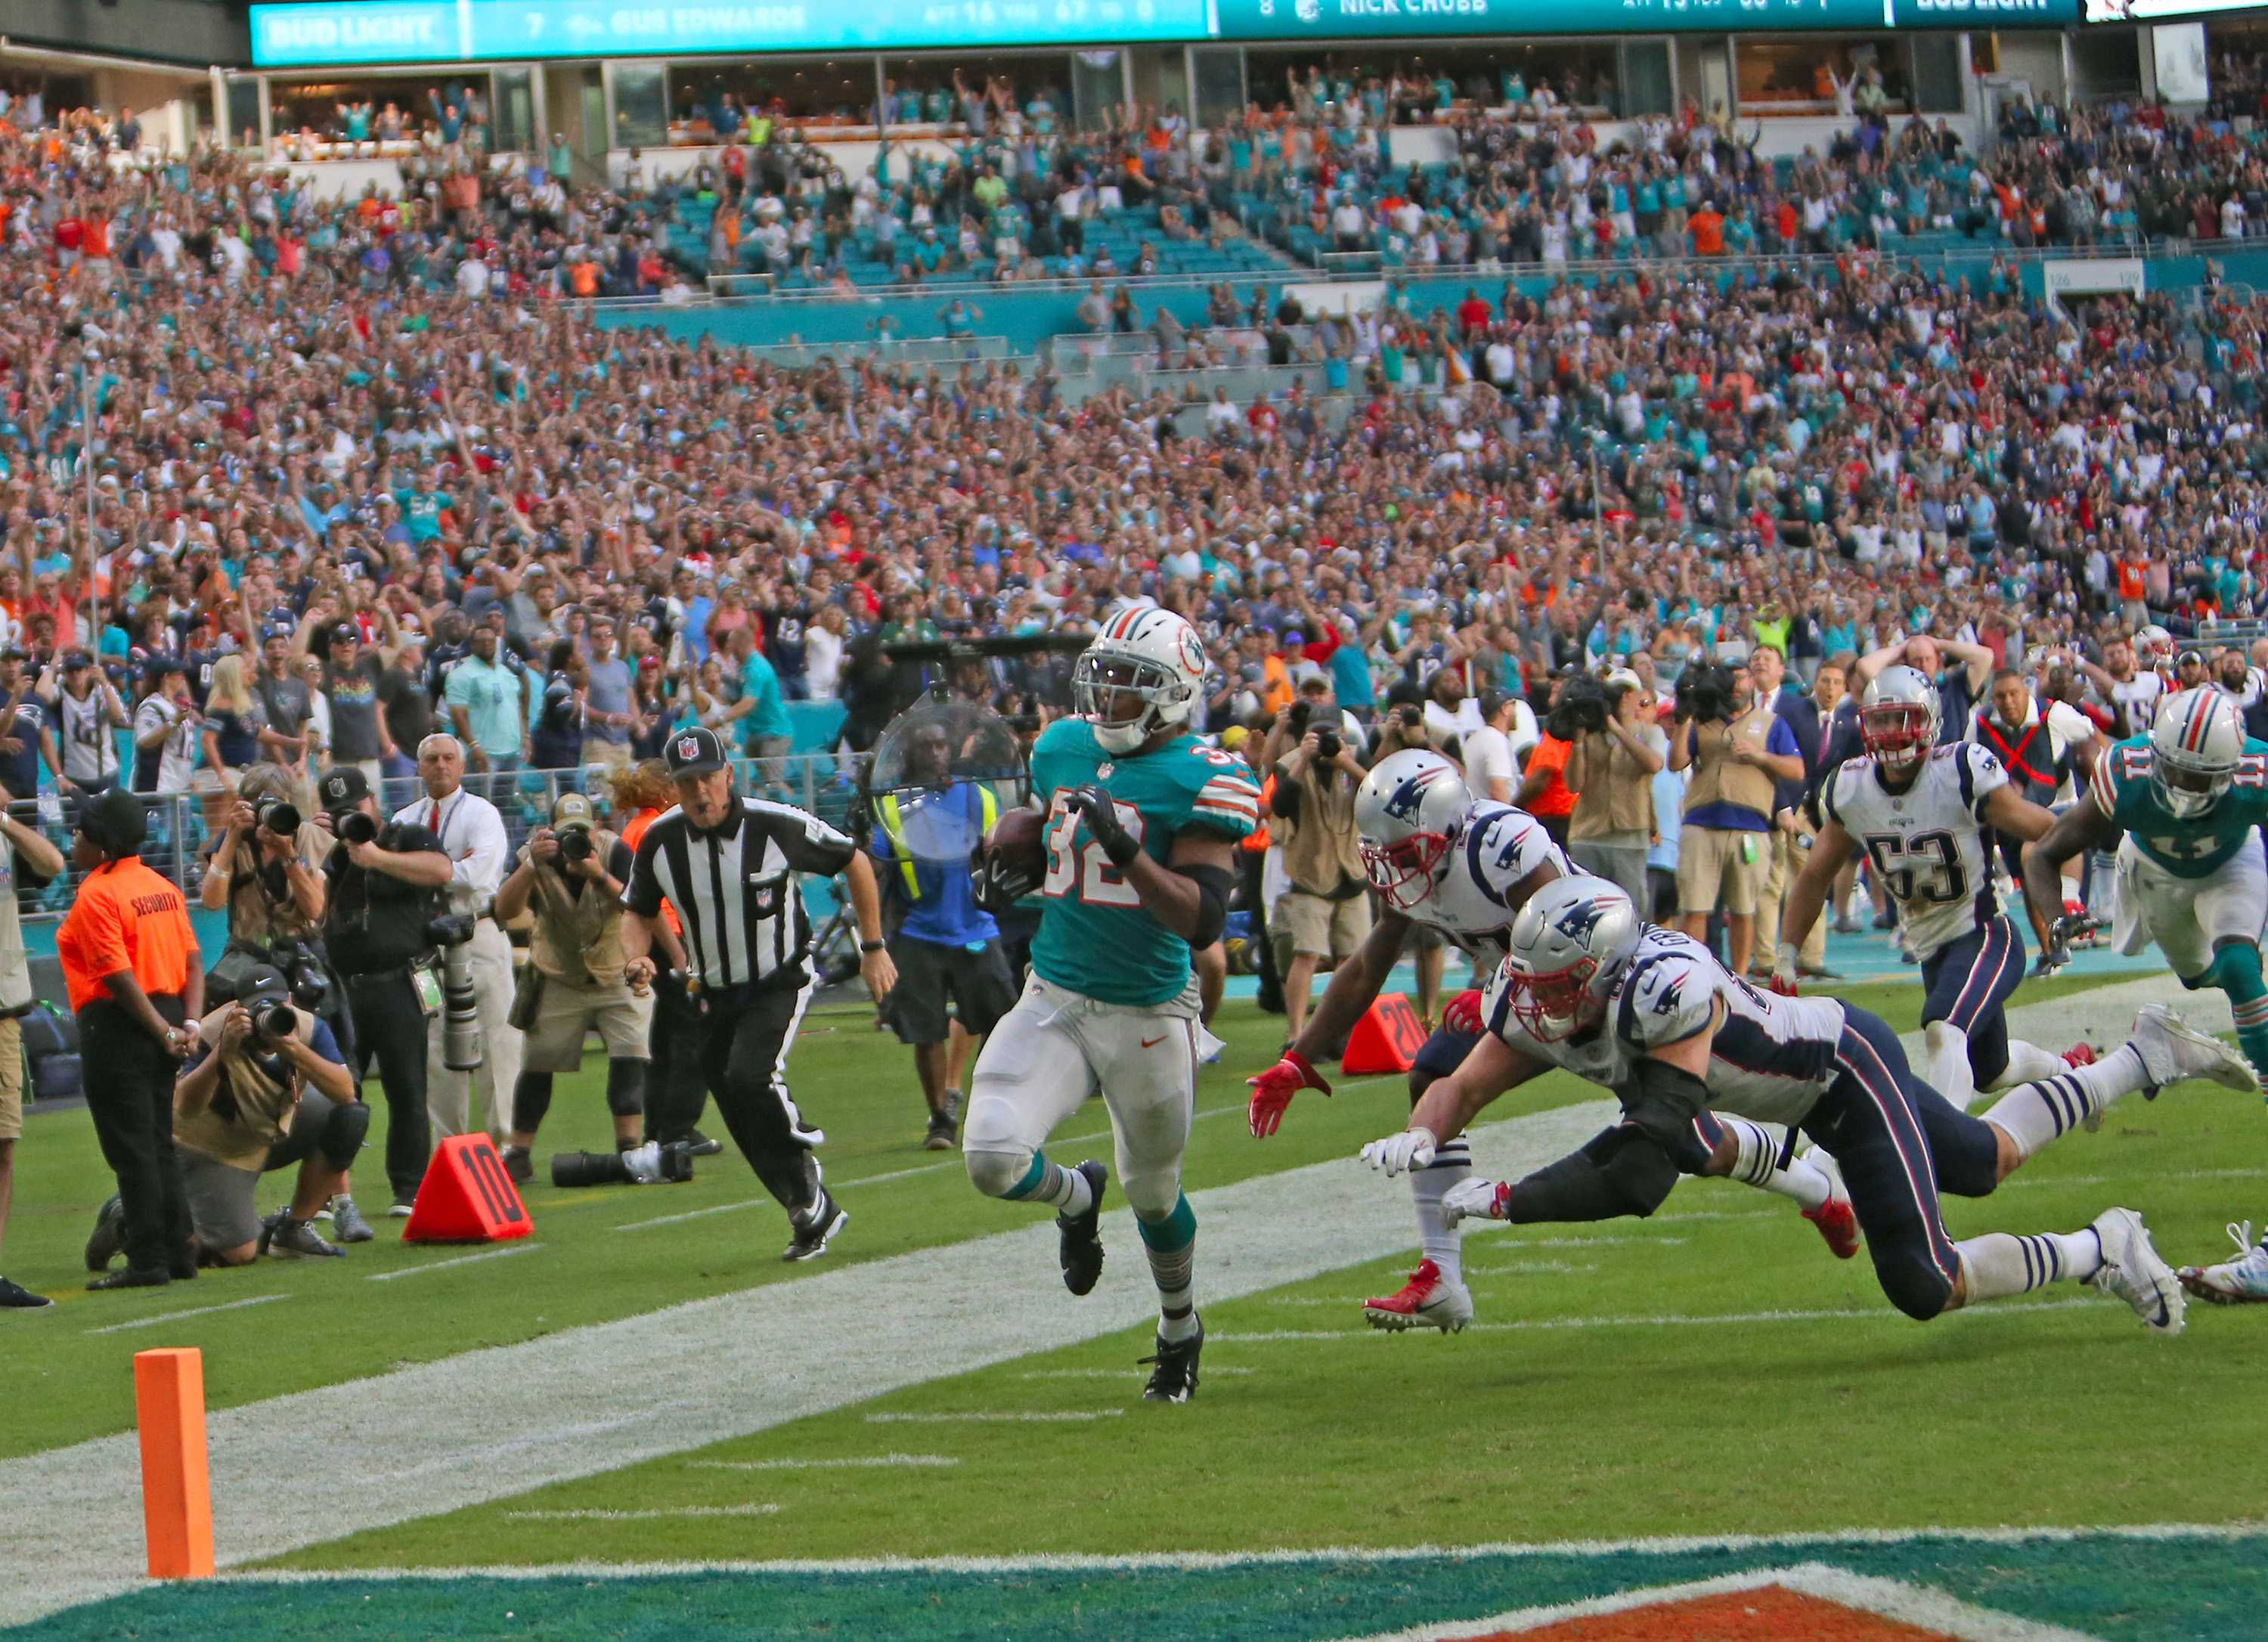 Miami Dolphins running back Kenyan Drake (32) scores the winning touchdown during the fourth quarter against the New England Patriots on Sunday, Dec. 9, 2018 at Hard Rock Stadium in Miami Gardens, Fla. (David Santiago/Miami Herald/TNS)